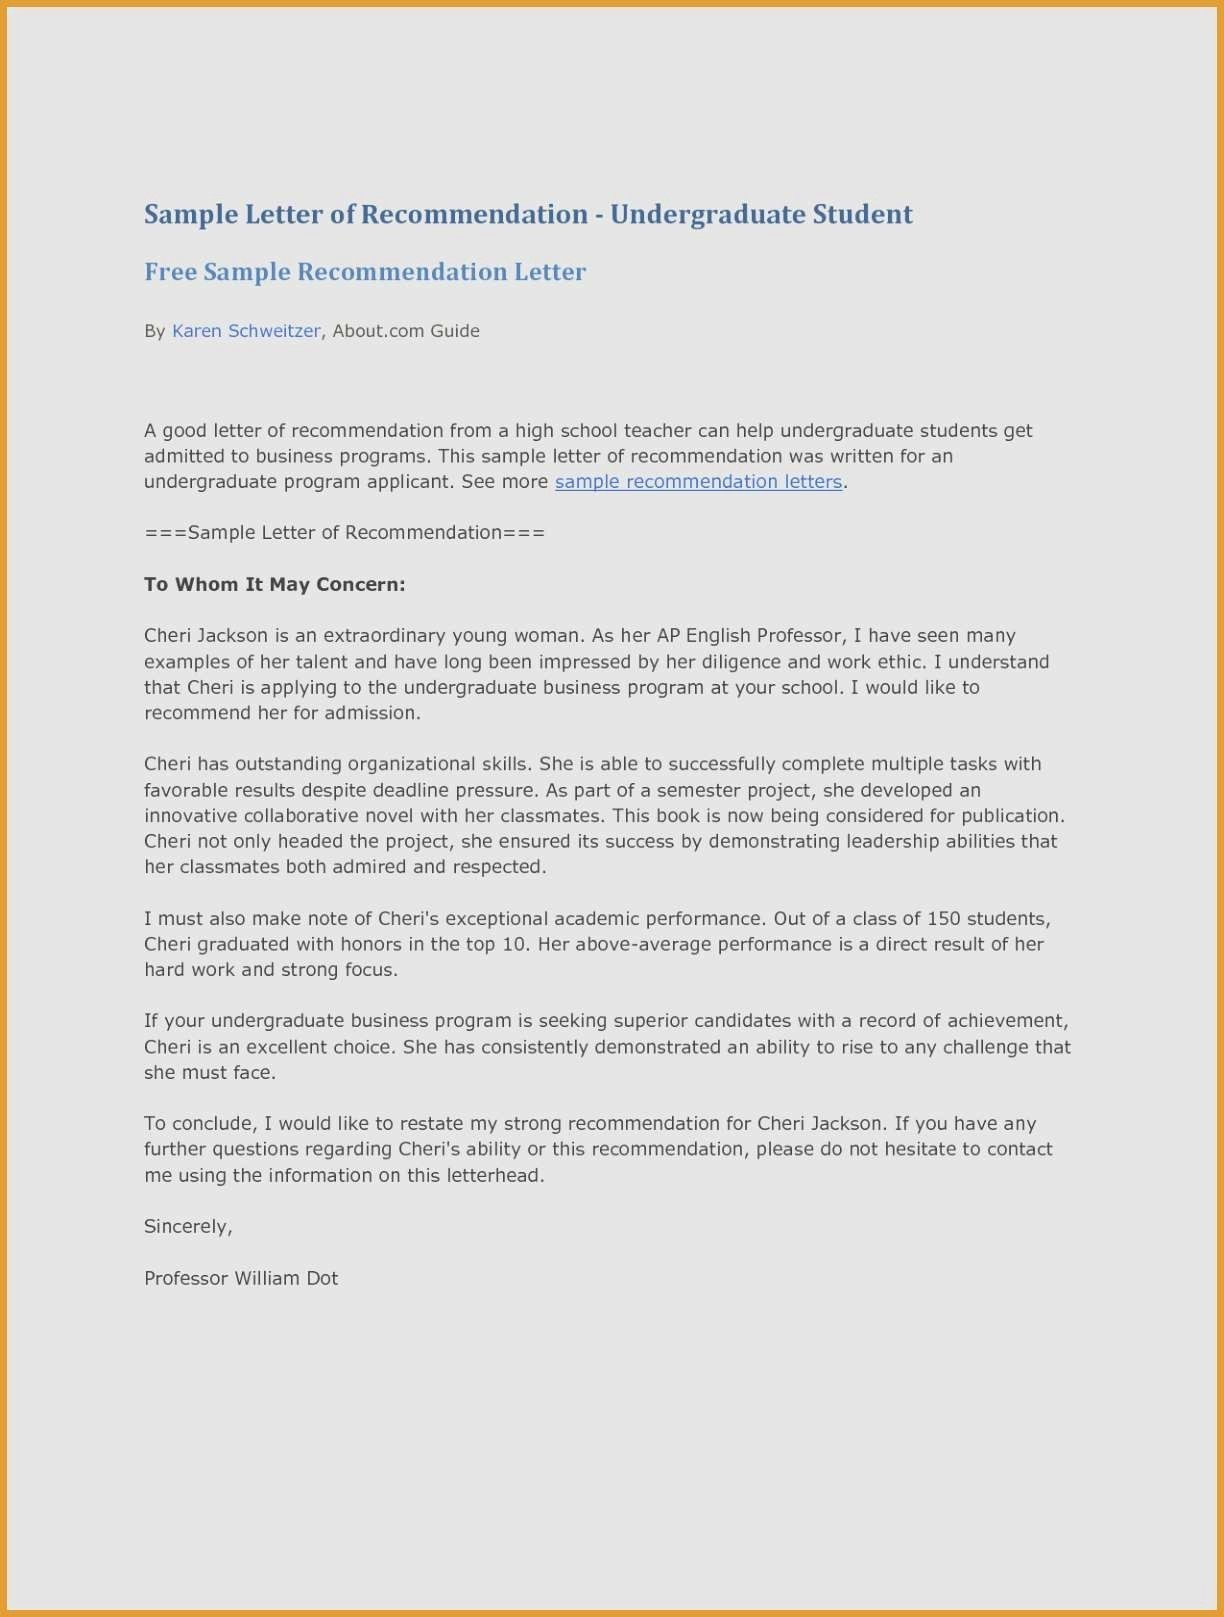 Heading for Letter Of Recommendation Fresh Sample Letter Re Mendation Heading Fresh Letter Re